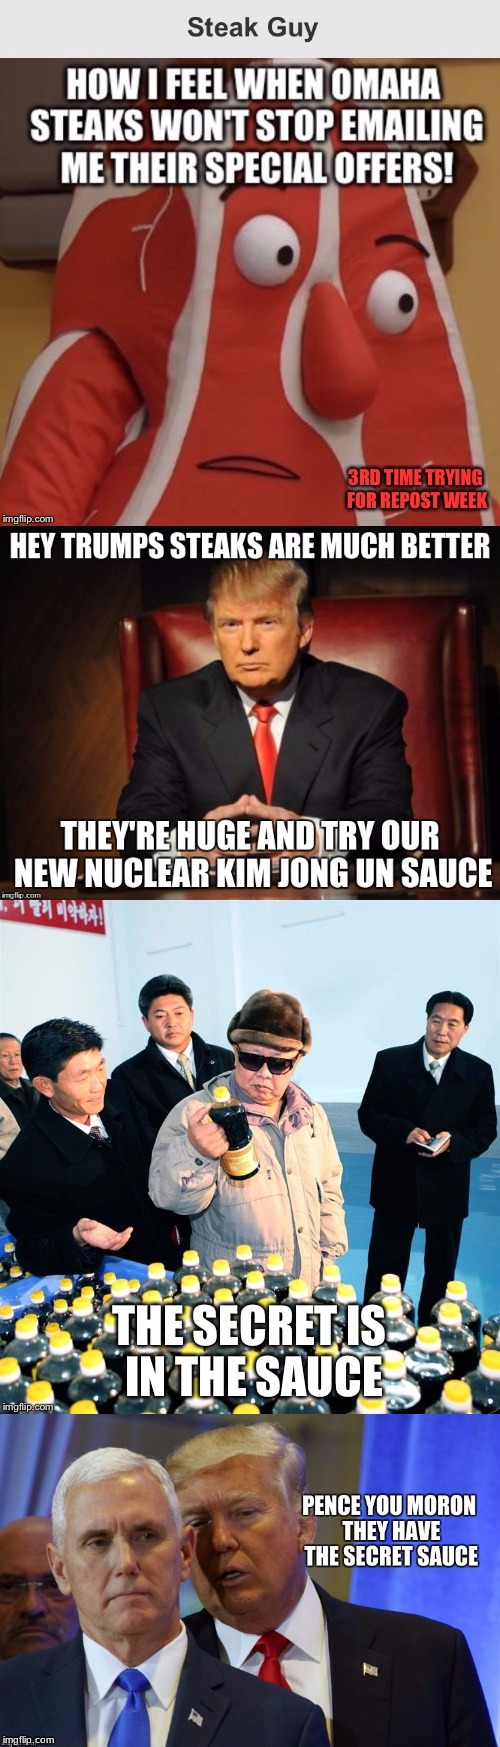 "A Jessica meme Combined with our comments! Hey It's a repost! ""Repost Week"" ( A GotHighMadeAMeme and Pipe_Picasso event) 